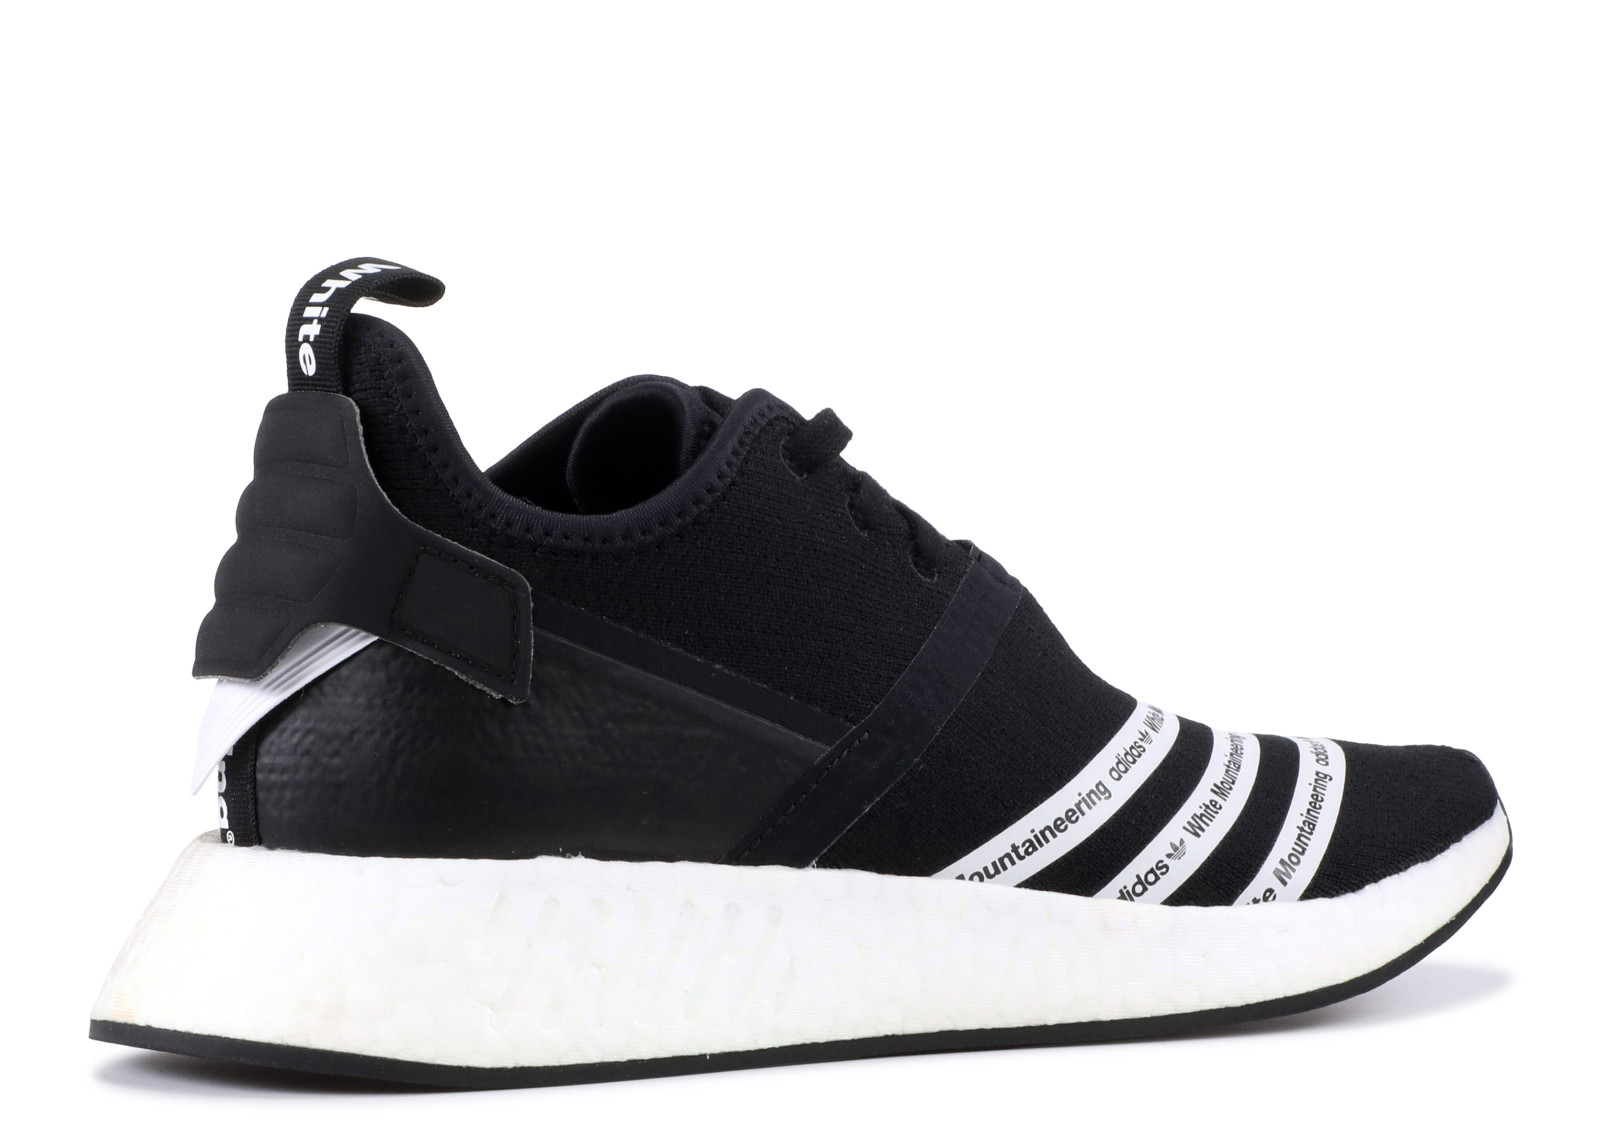 a2205ea369513 NMD R2 White Mountaineering Black - 3